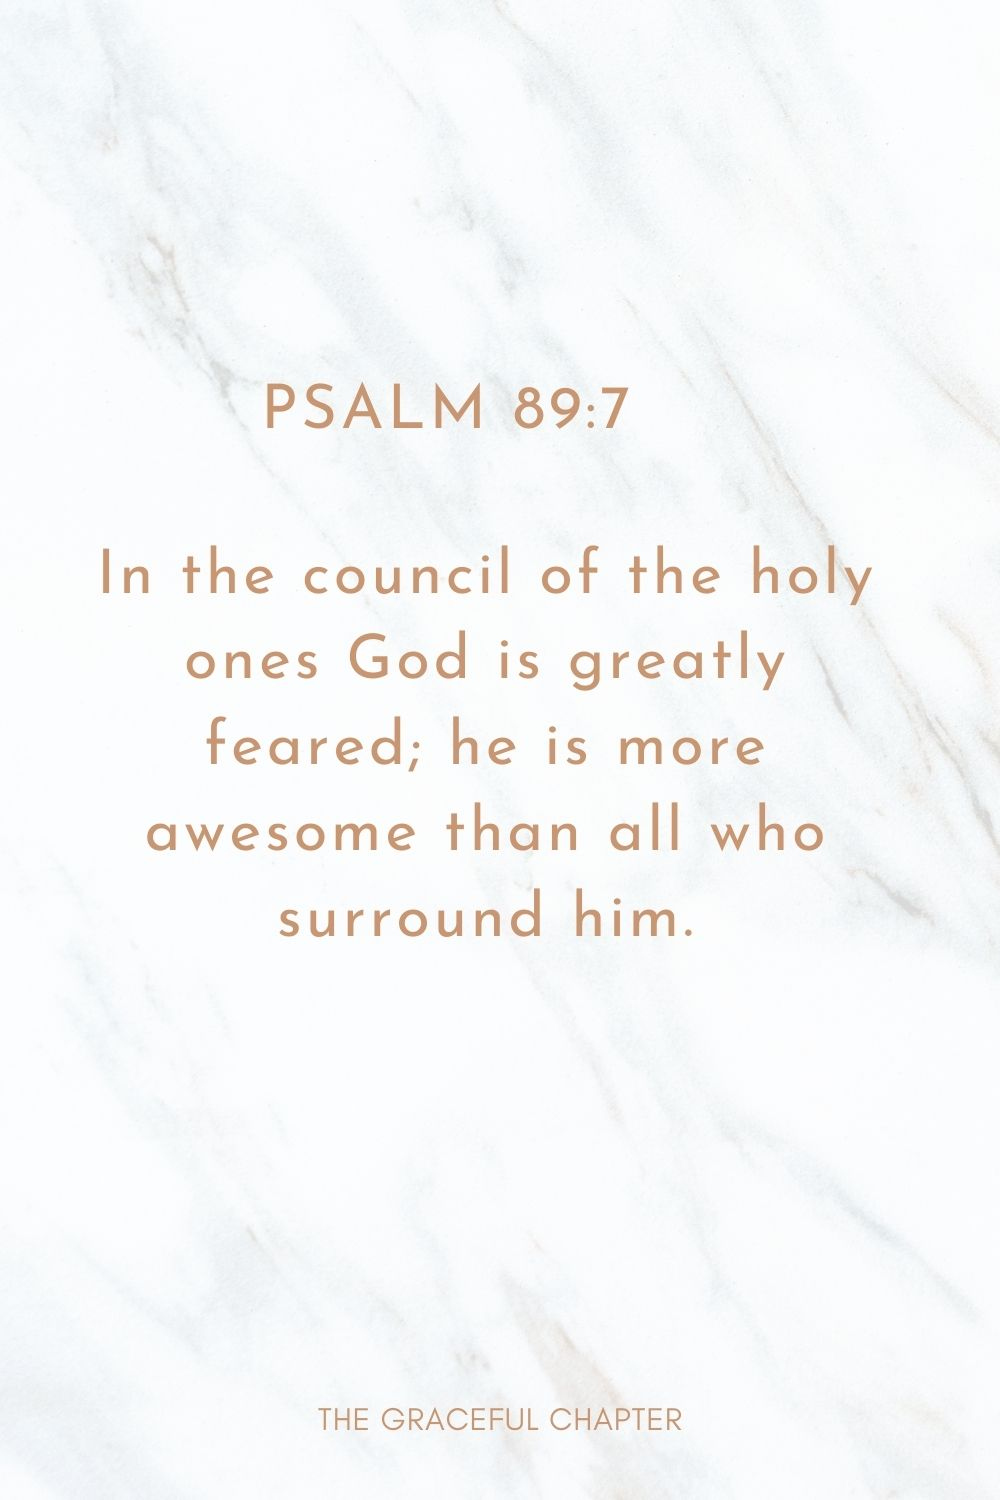 In the council of the holy ones God is greatly feared; he is more awesome than all who surround him. Psalm 89:7